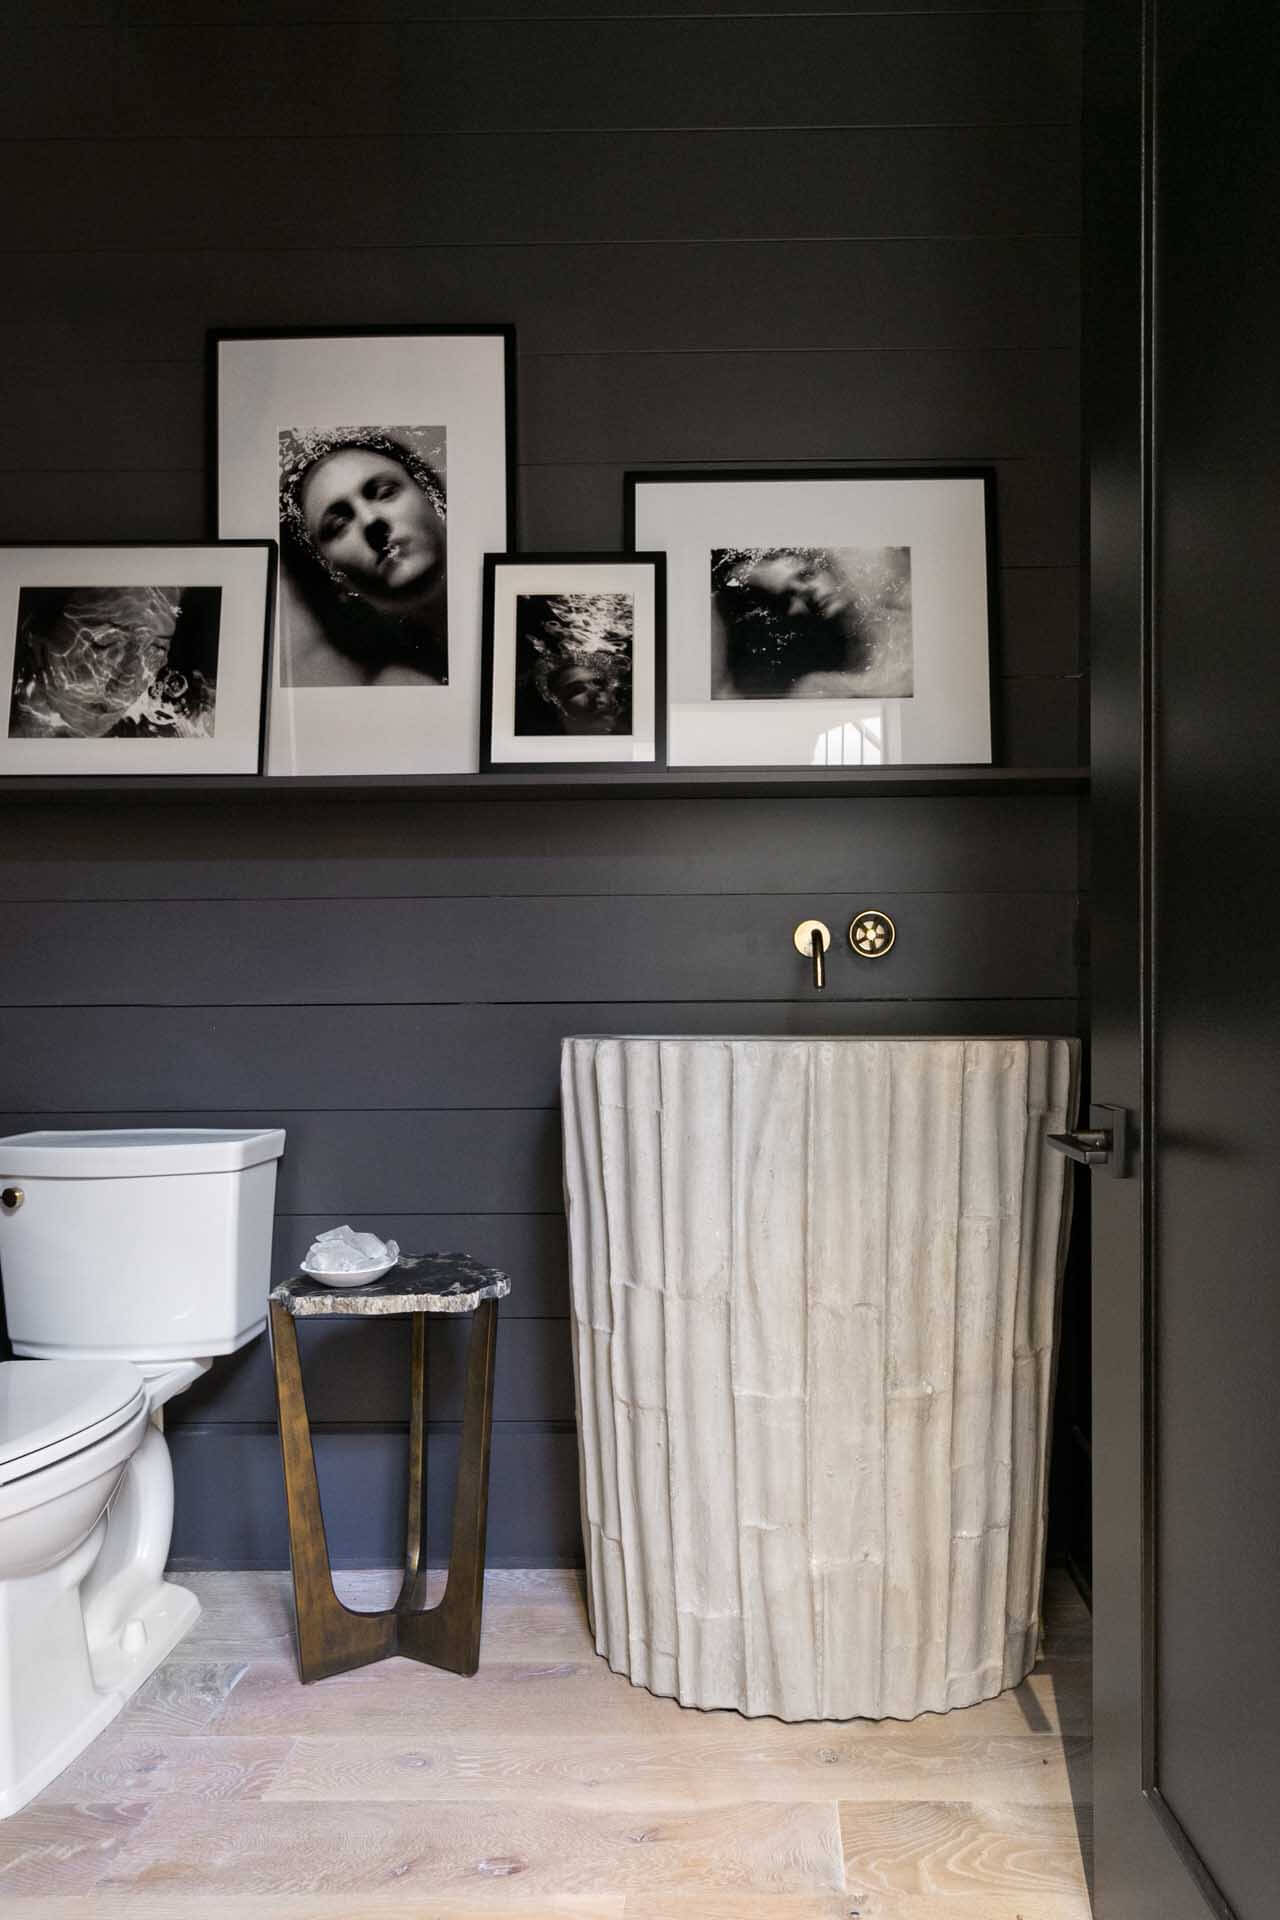 A powder room with dark accent walls and light decor.